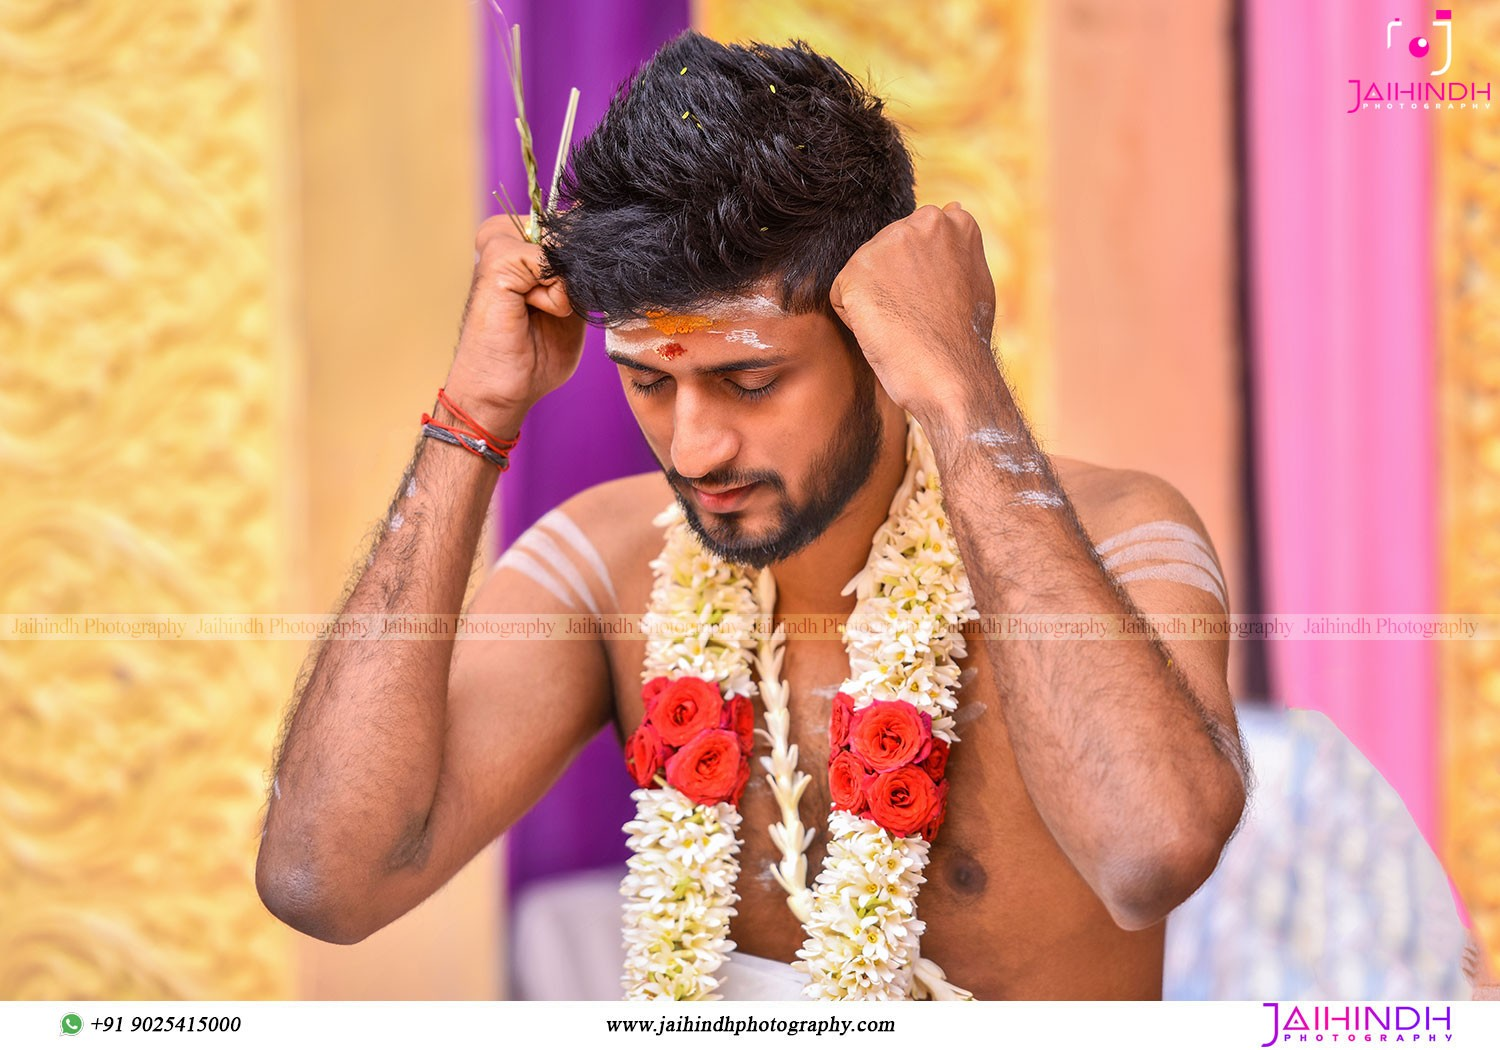 Candid Wedding Photography In Chennai 1 - Jaihind Photography